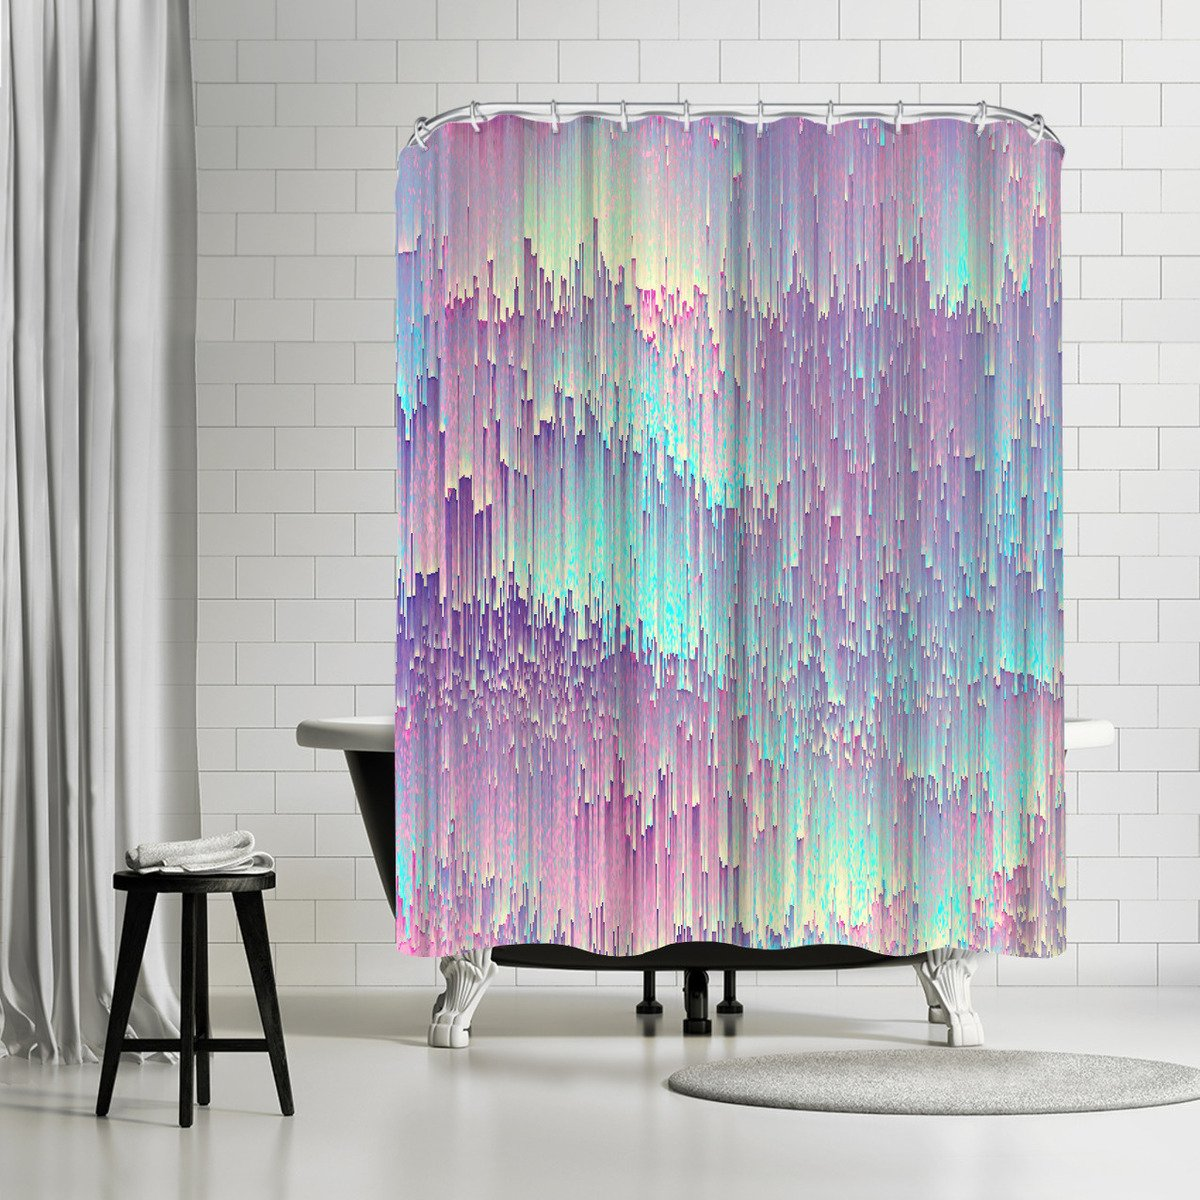 Iridescent Glitches By Emanuela Carratoni Shower Curtain Shower